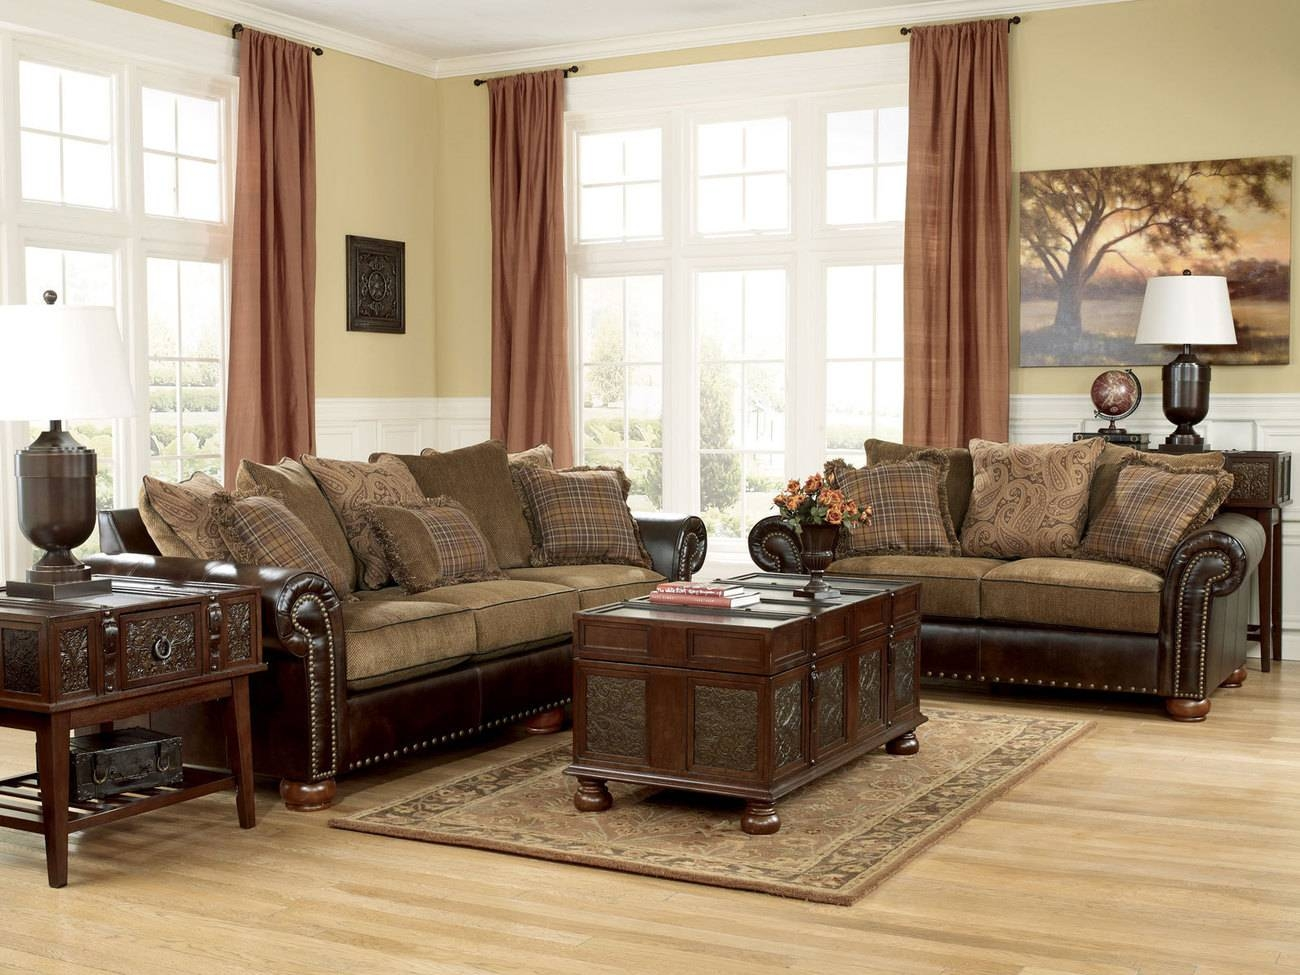 Leather And Cloth Sectional Sofas - Hotelsbacau inside Leather and Cloth Sofa (Image 8 of 25)